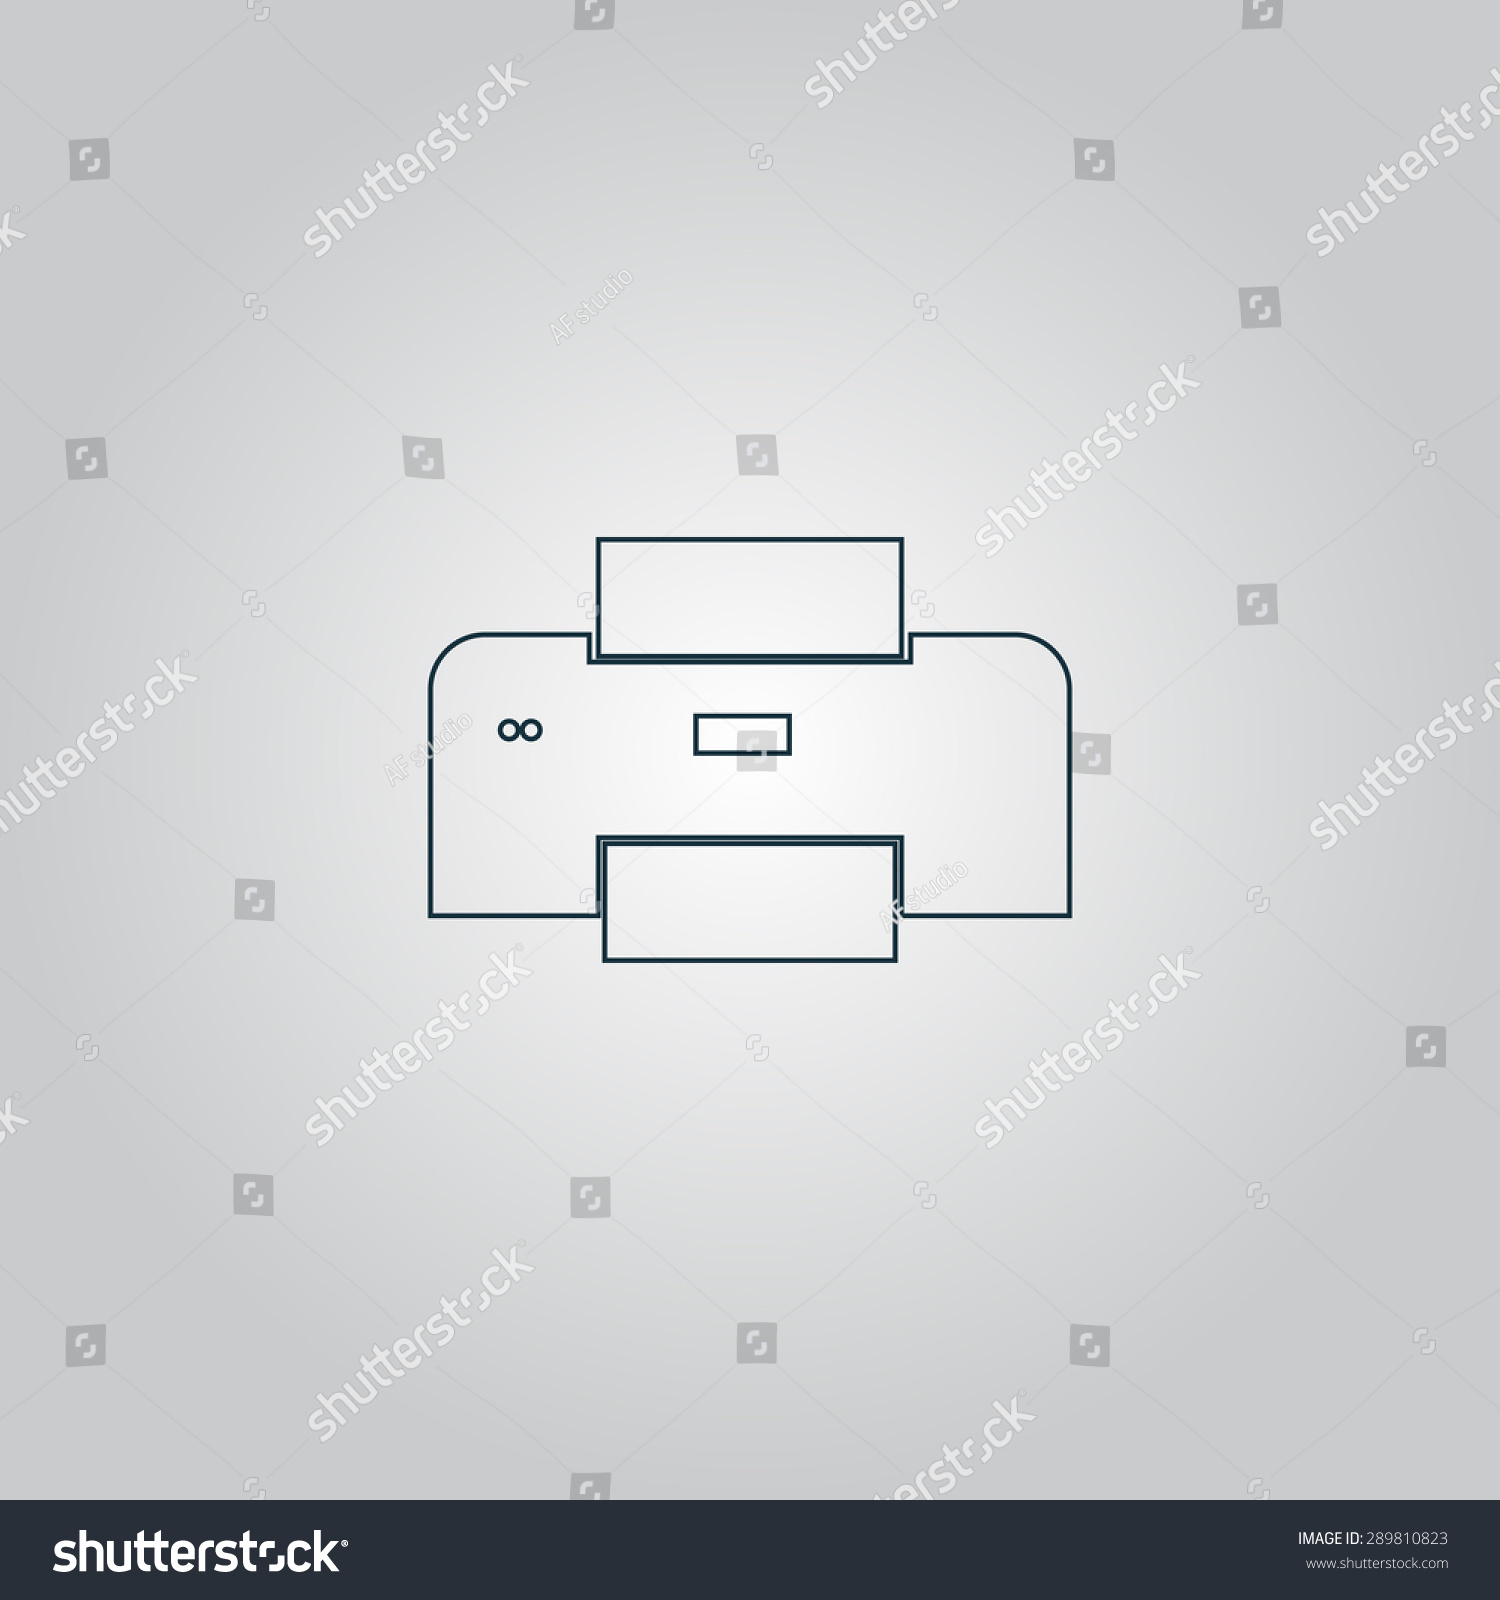 Light Switch Icon Flat. Shutdown Icon Vector Power Icon Onoff Switch ...